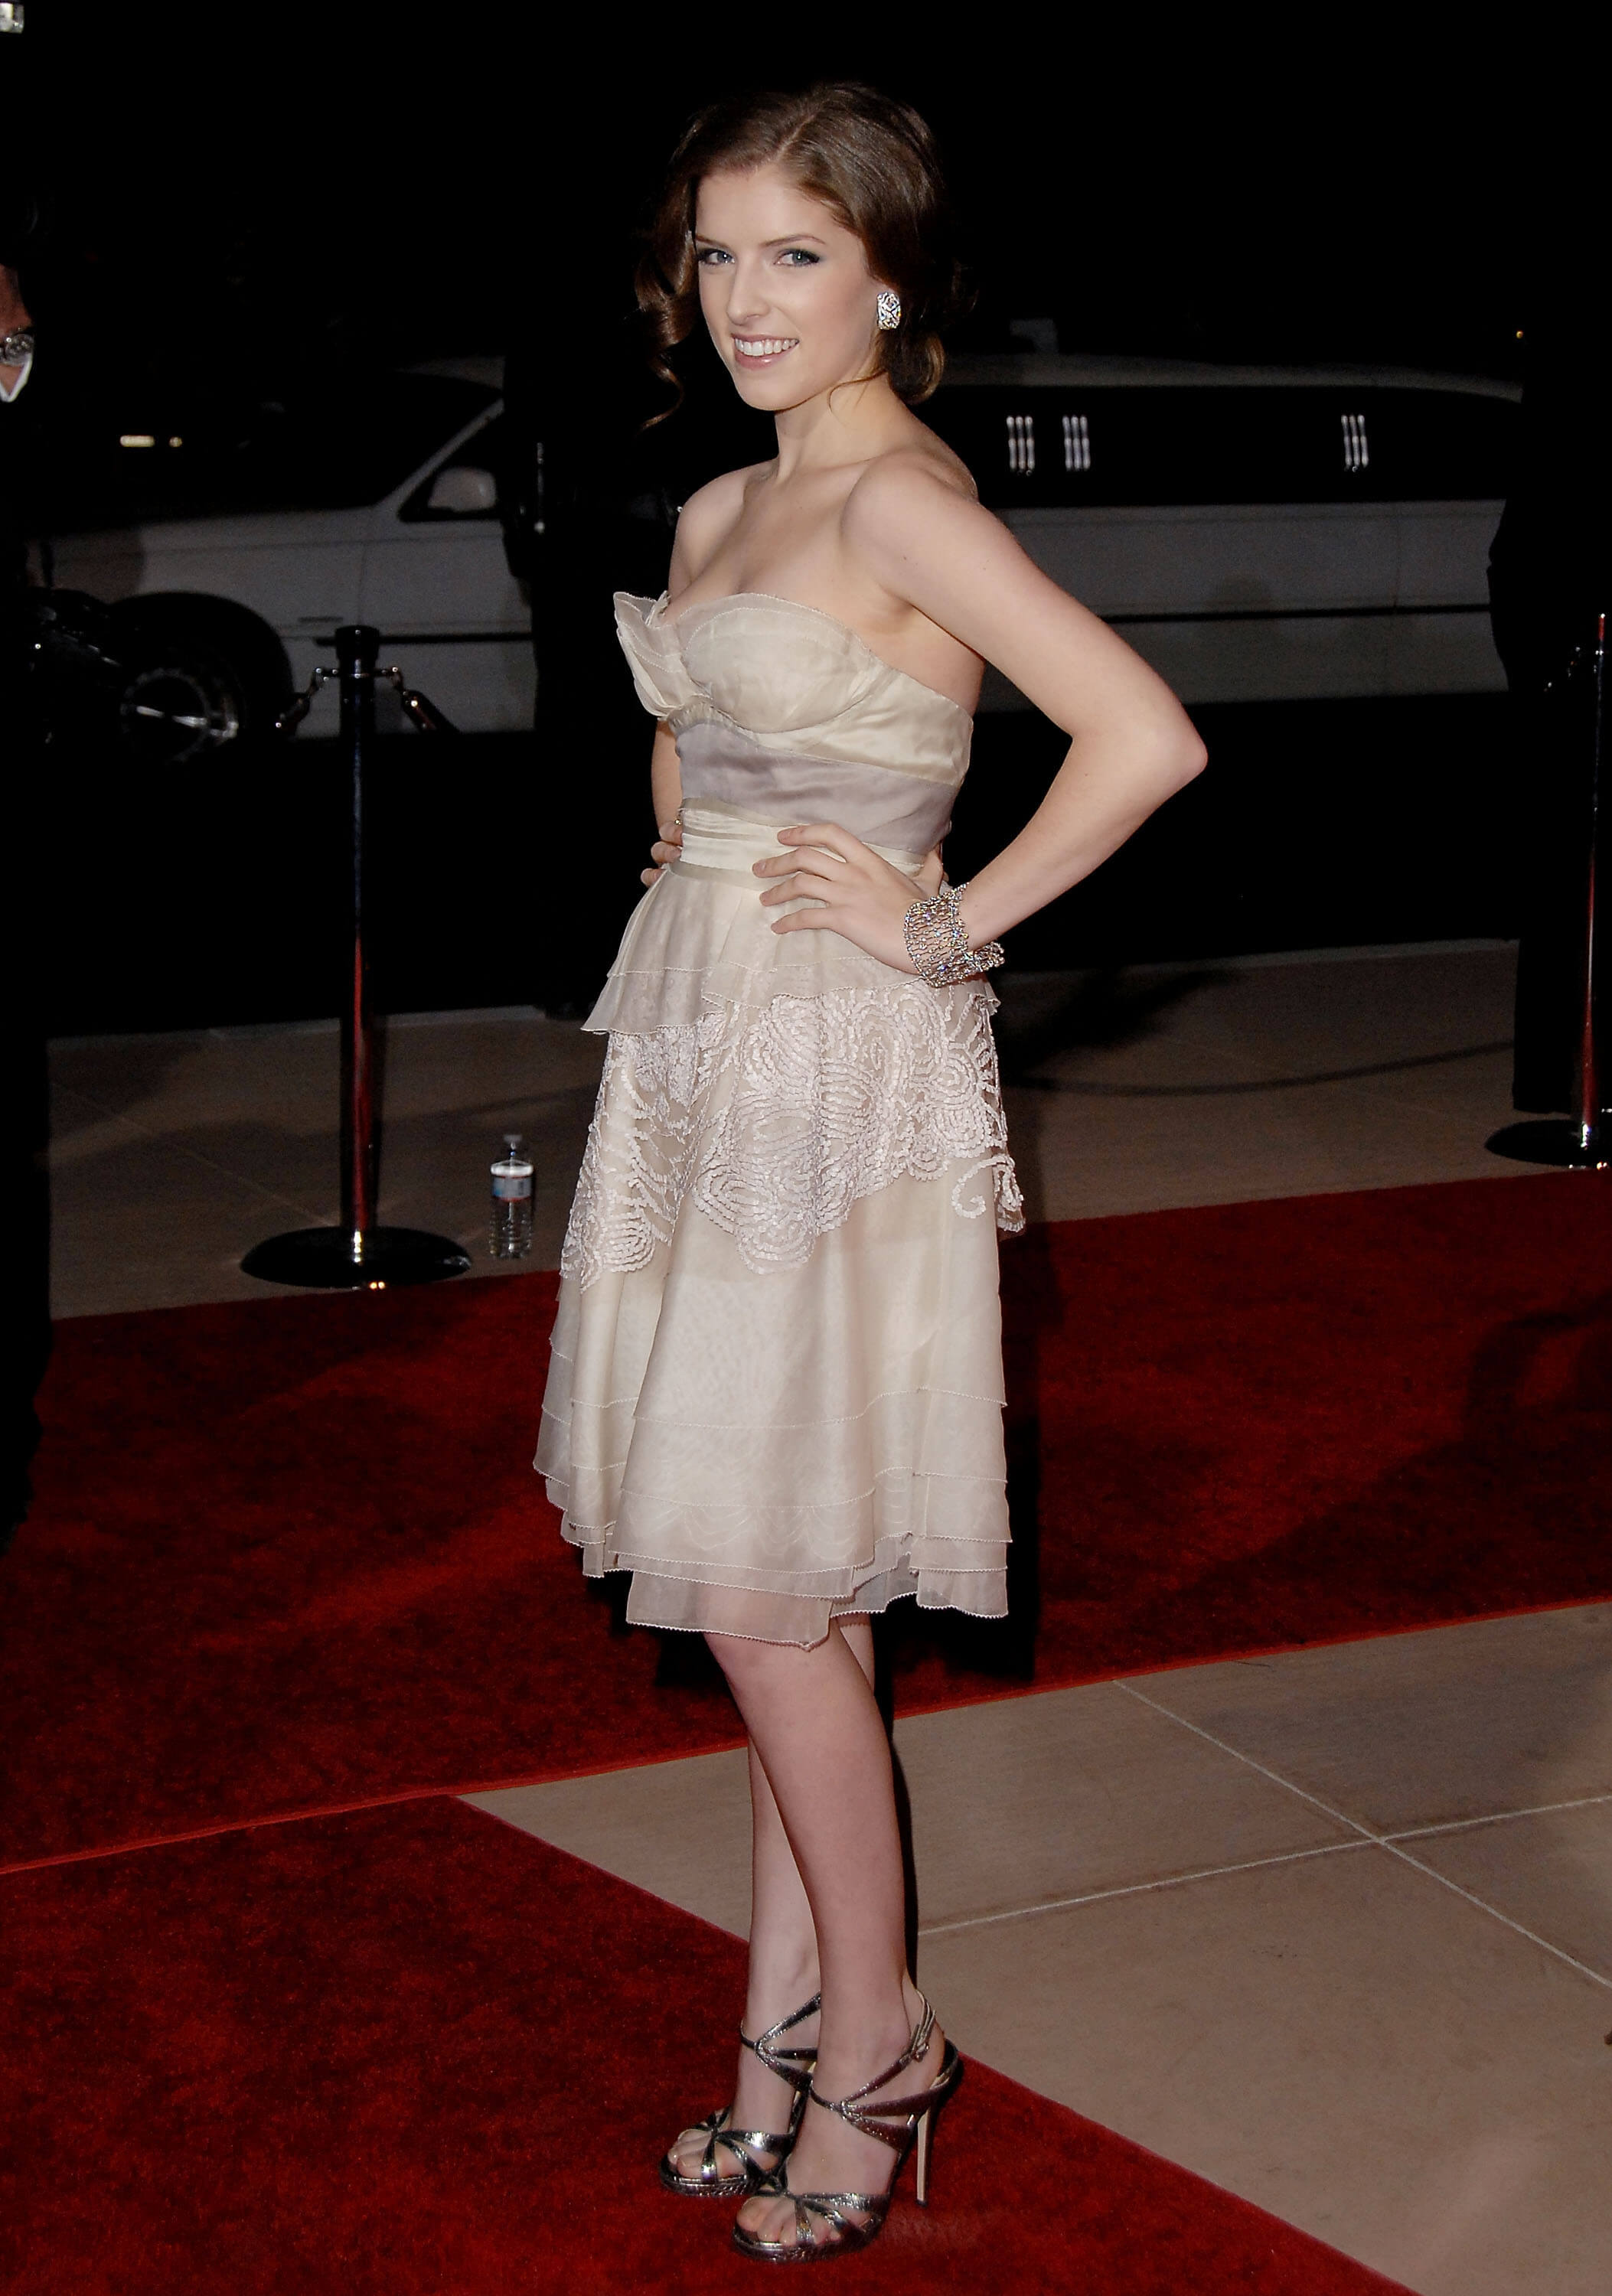 Anna Kendrick awesome images